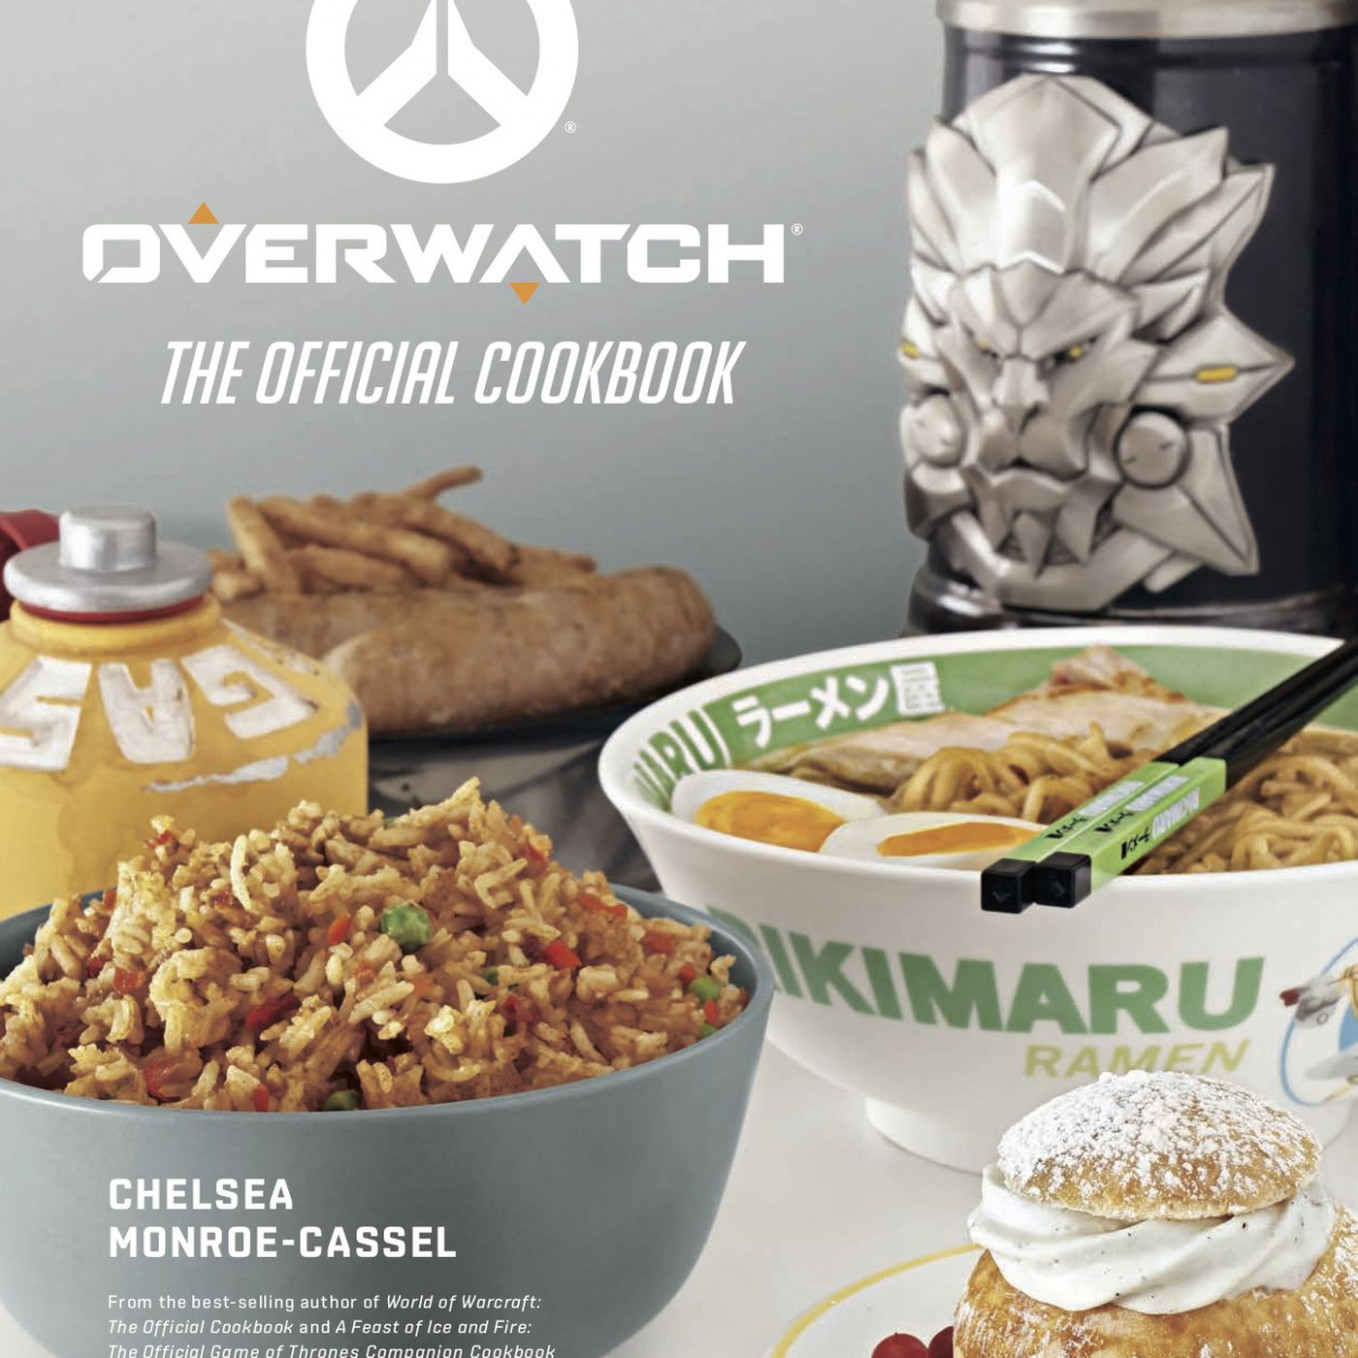 The official Overwatch cookbook goes up for pre-order at ..